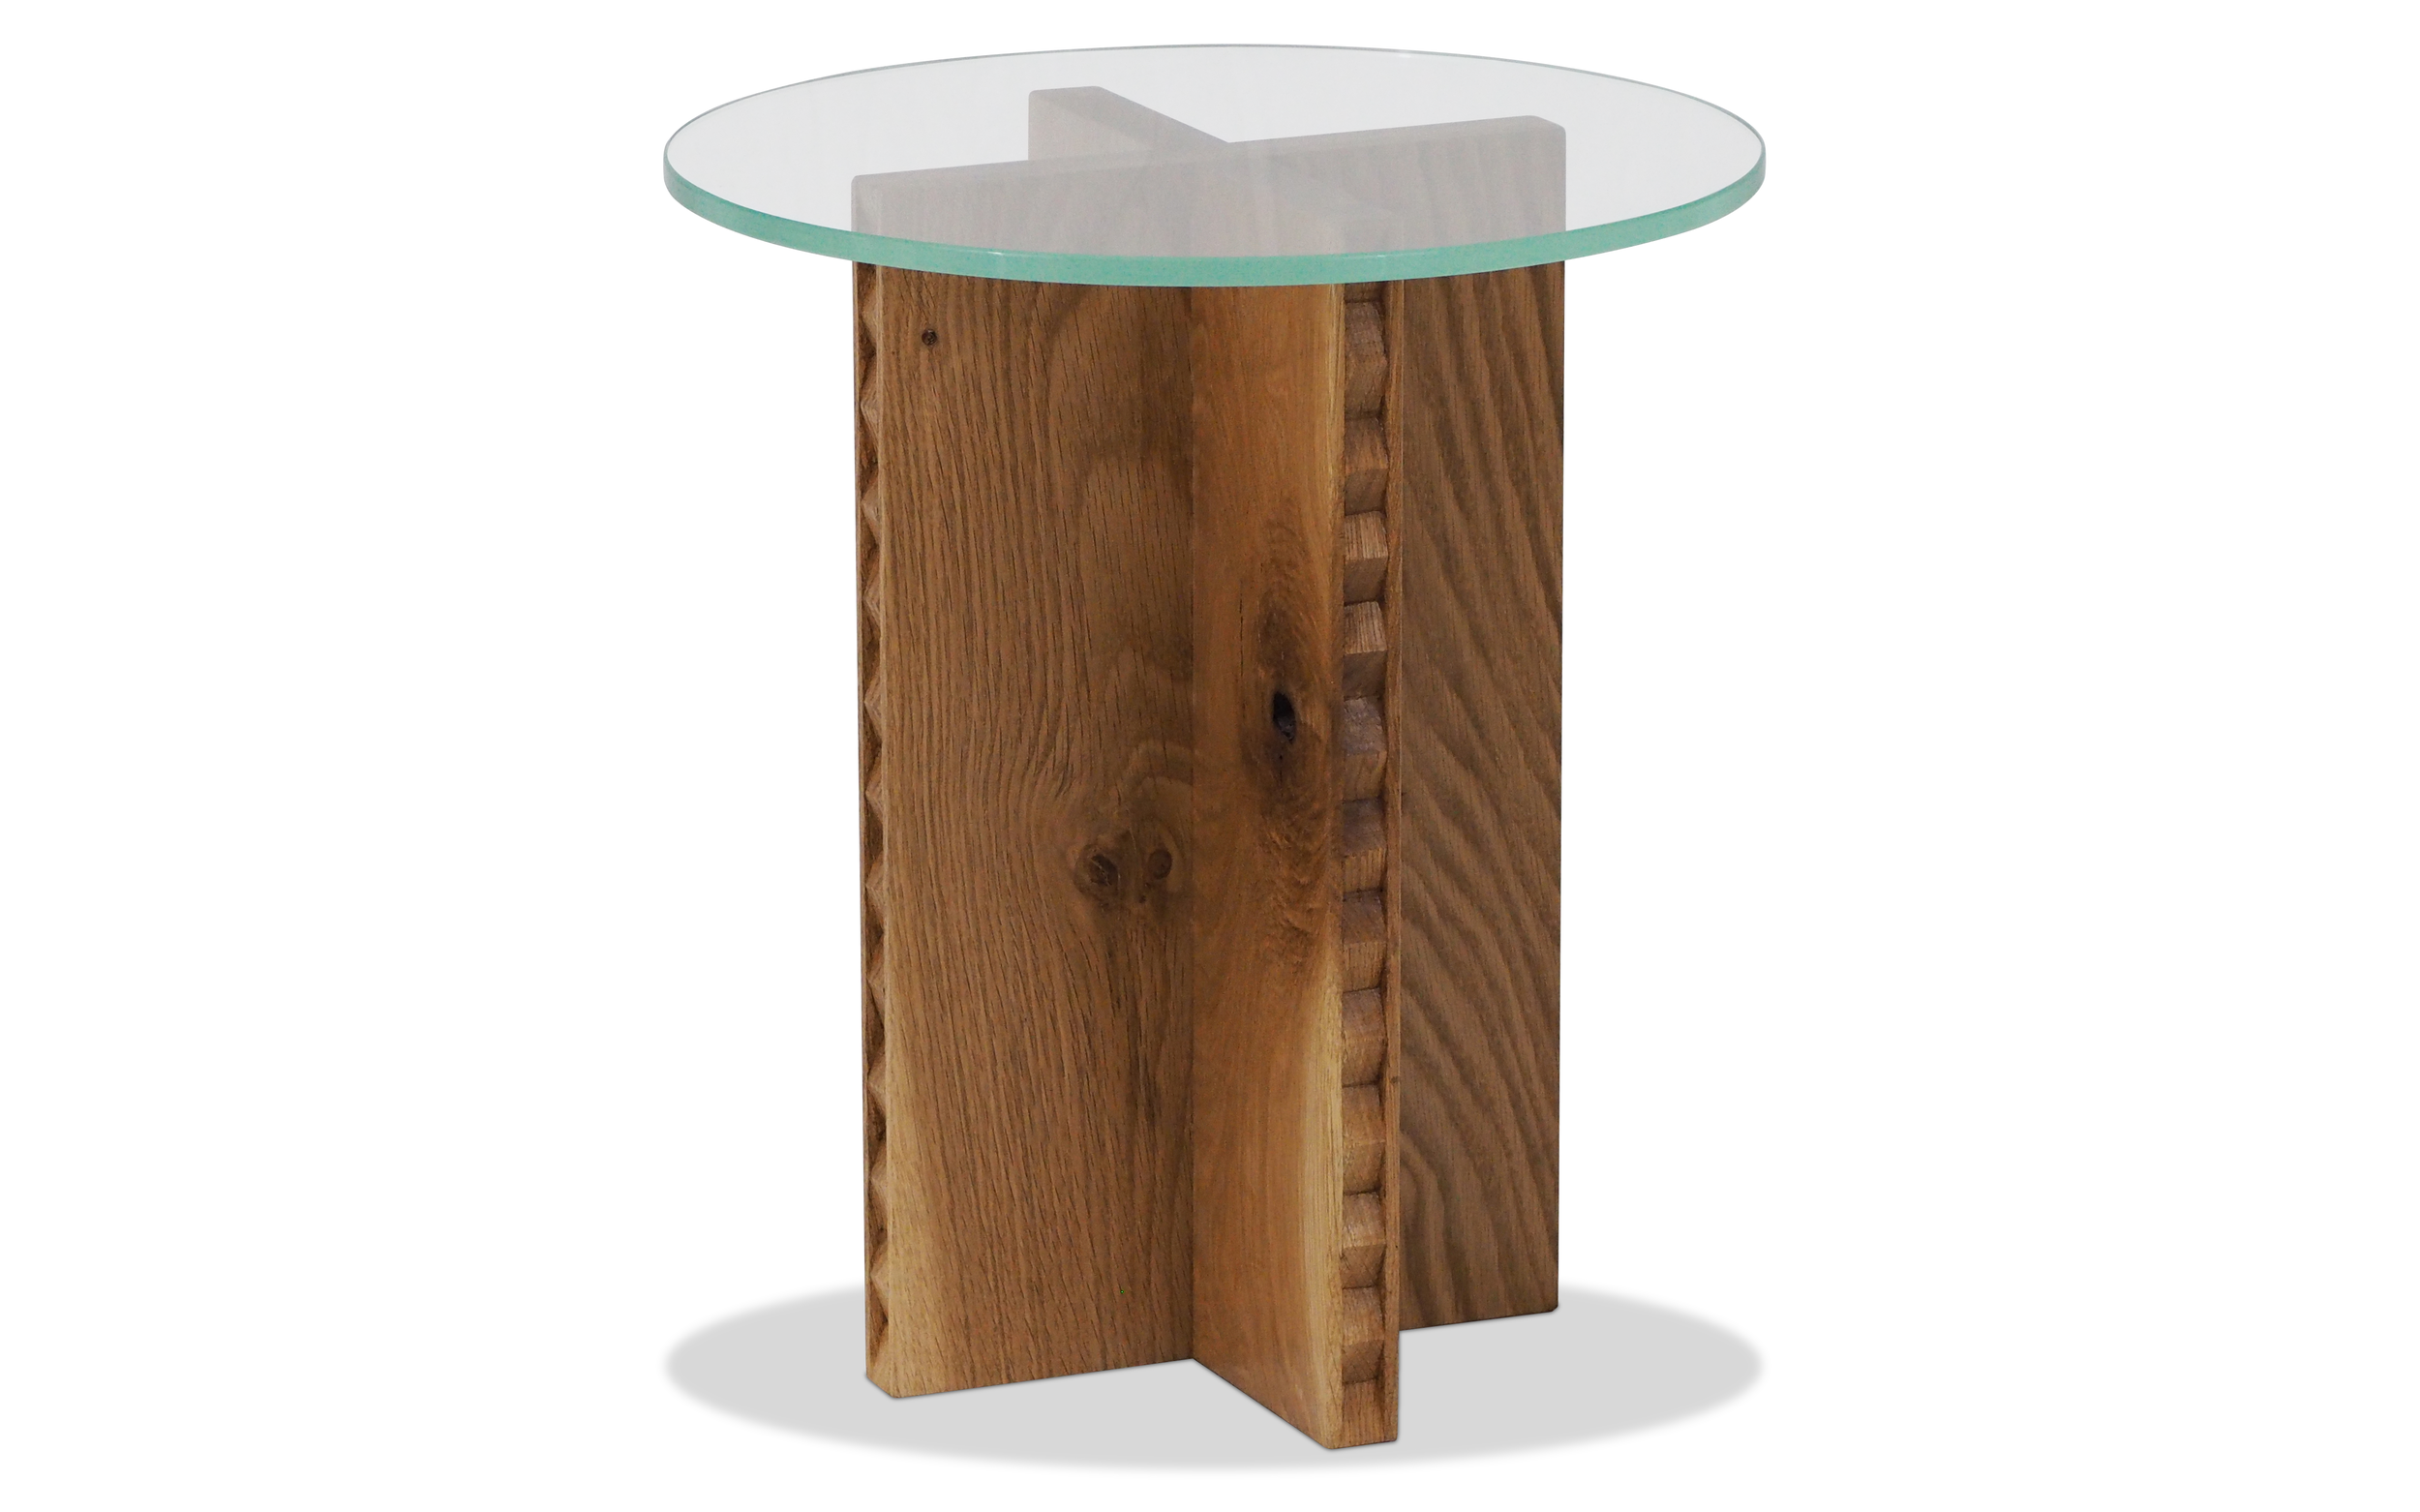 Chip-Carve Table